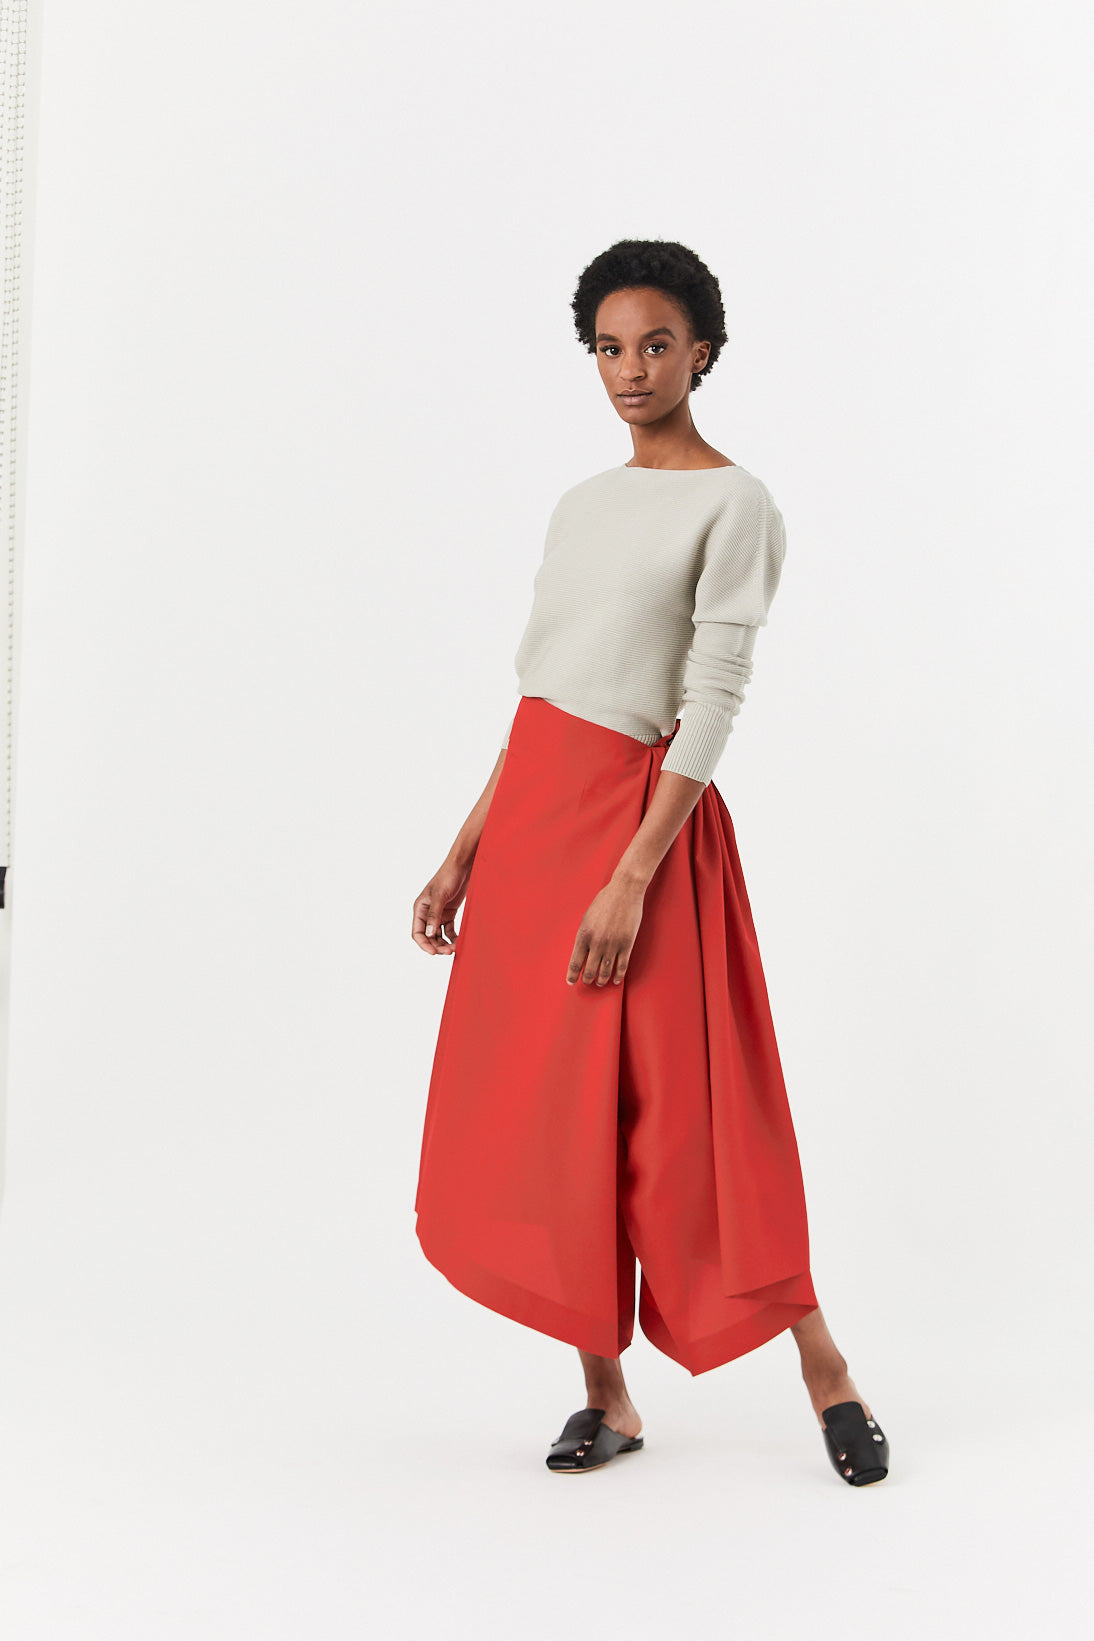 132 5. by Issey Miyake - Flat Slit Pant, Red